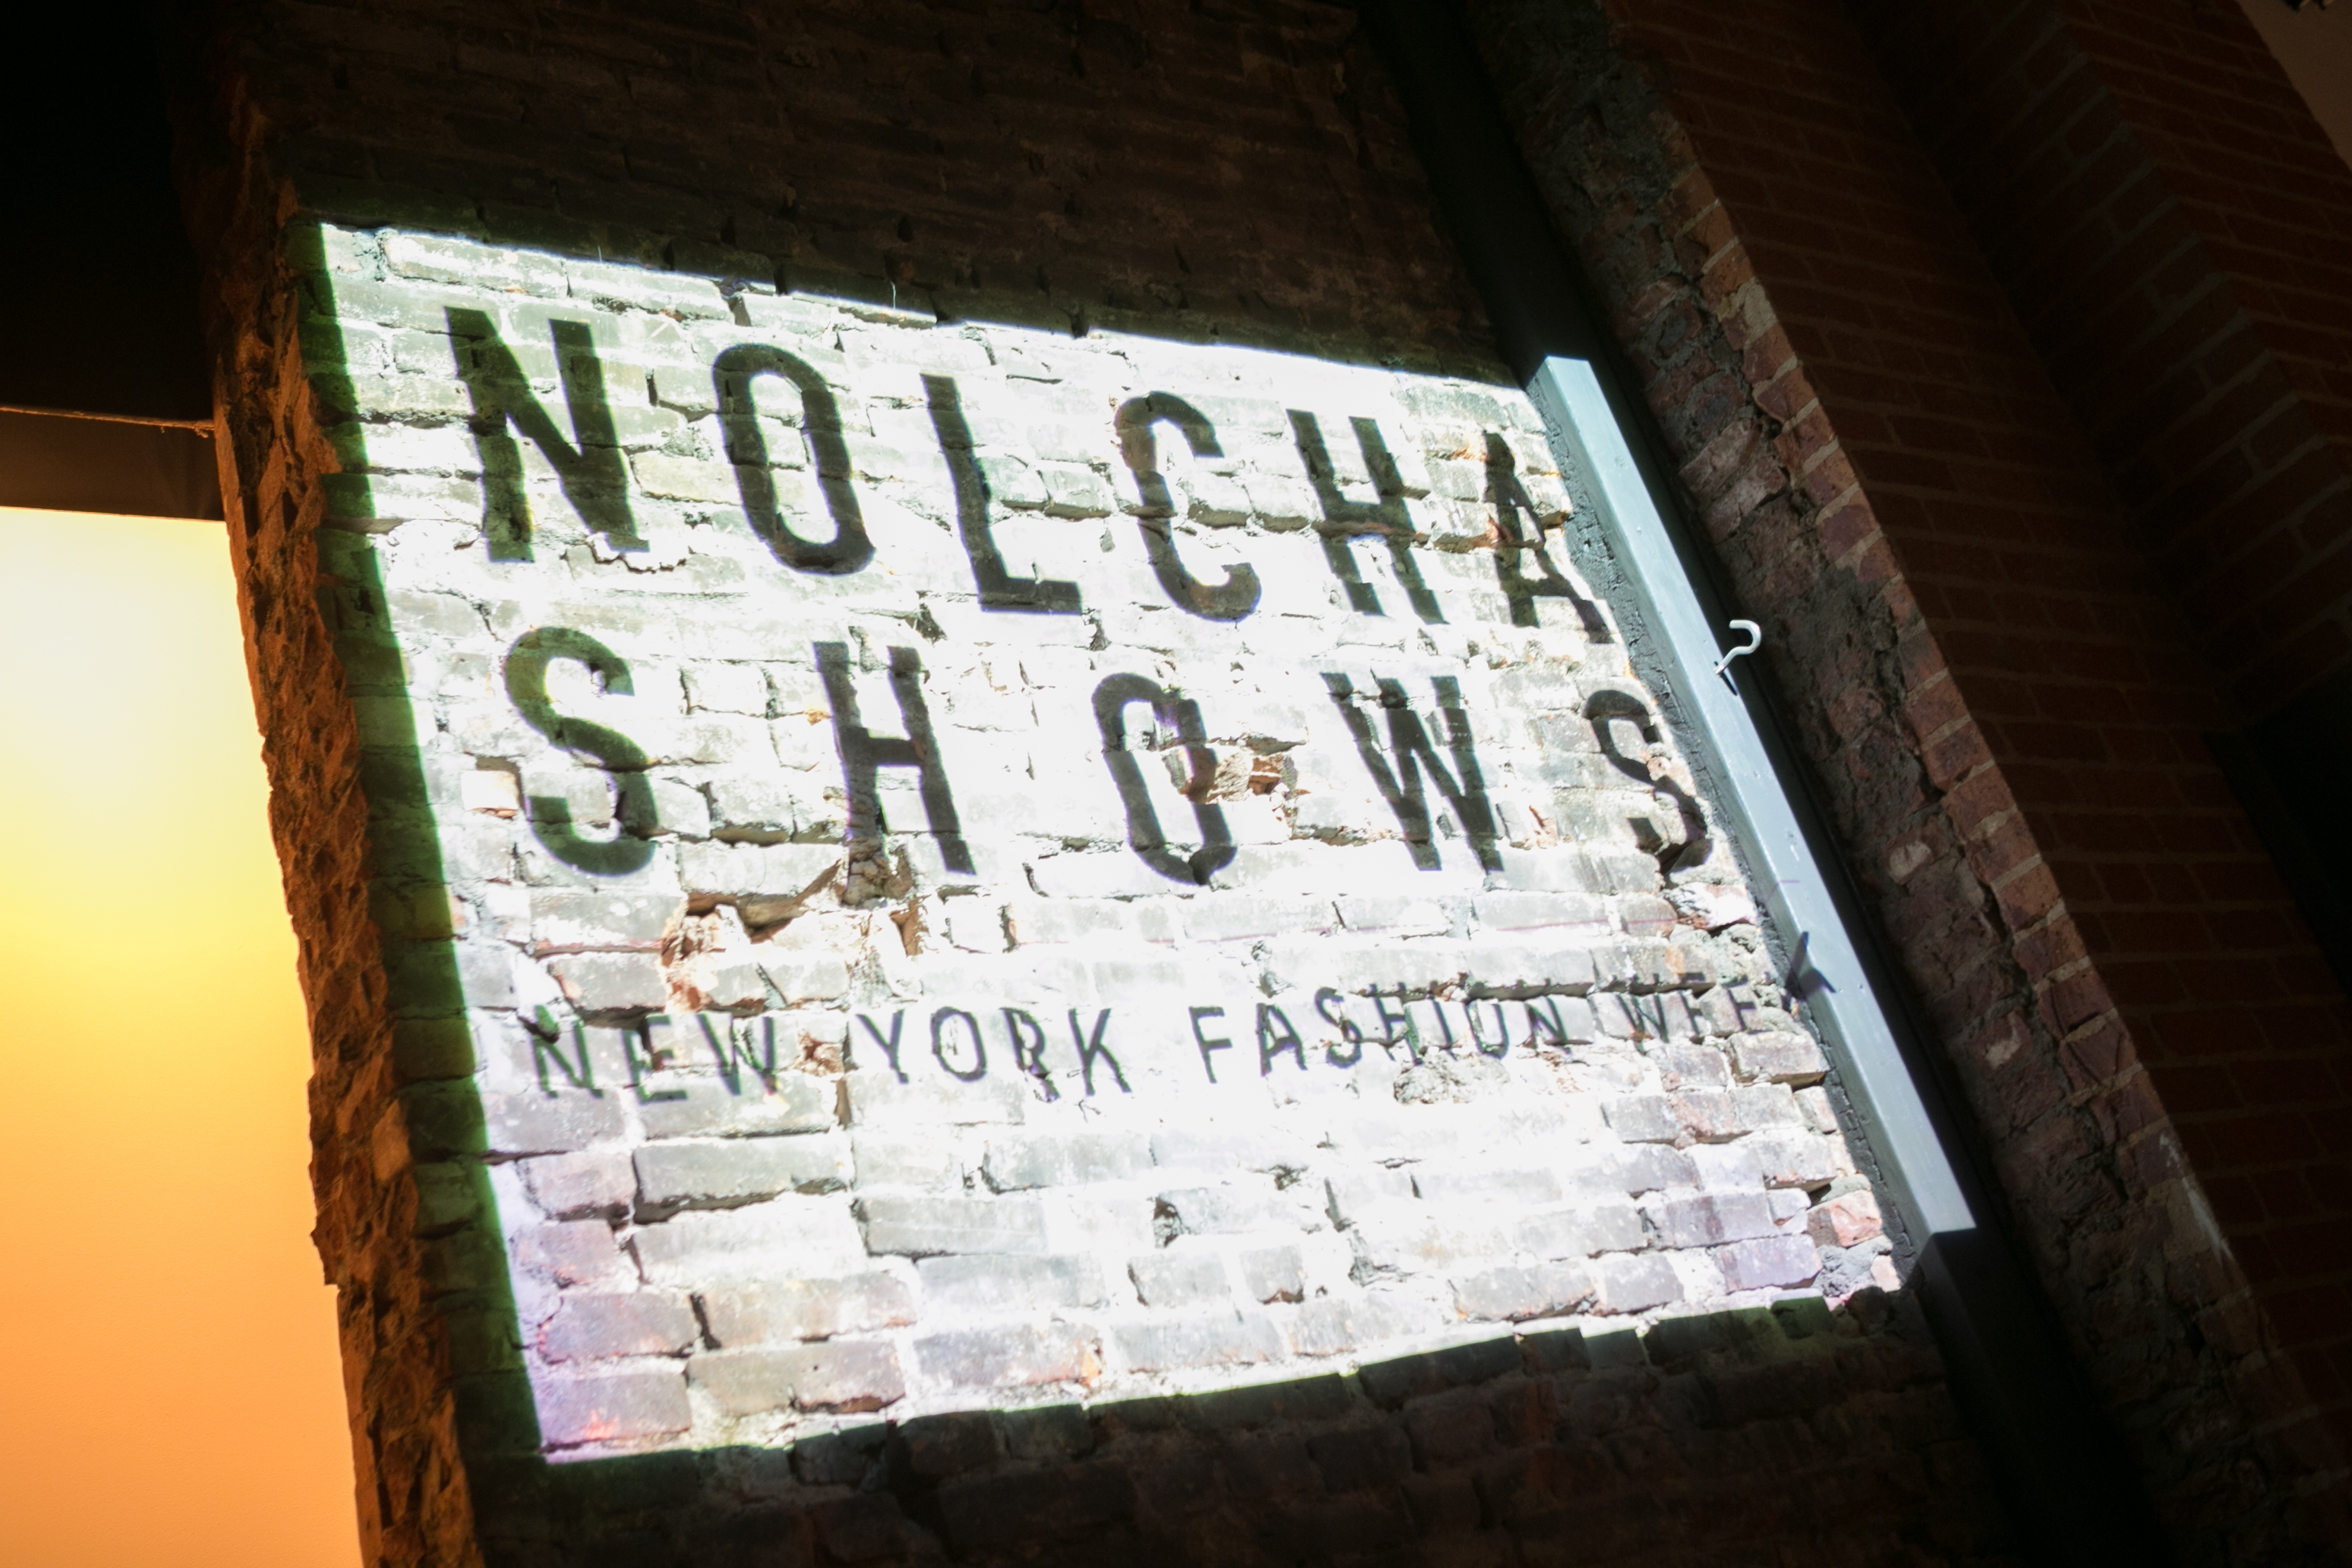 Nolcha_Shows_during_New_York_Fashion_Week_Fall-Winter_2016-021515-6P9A1324